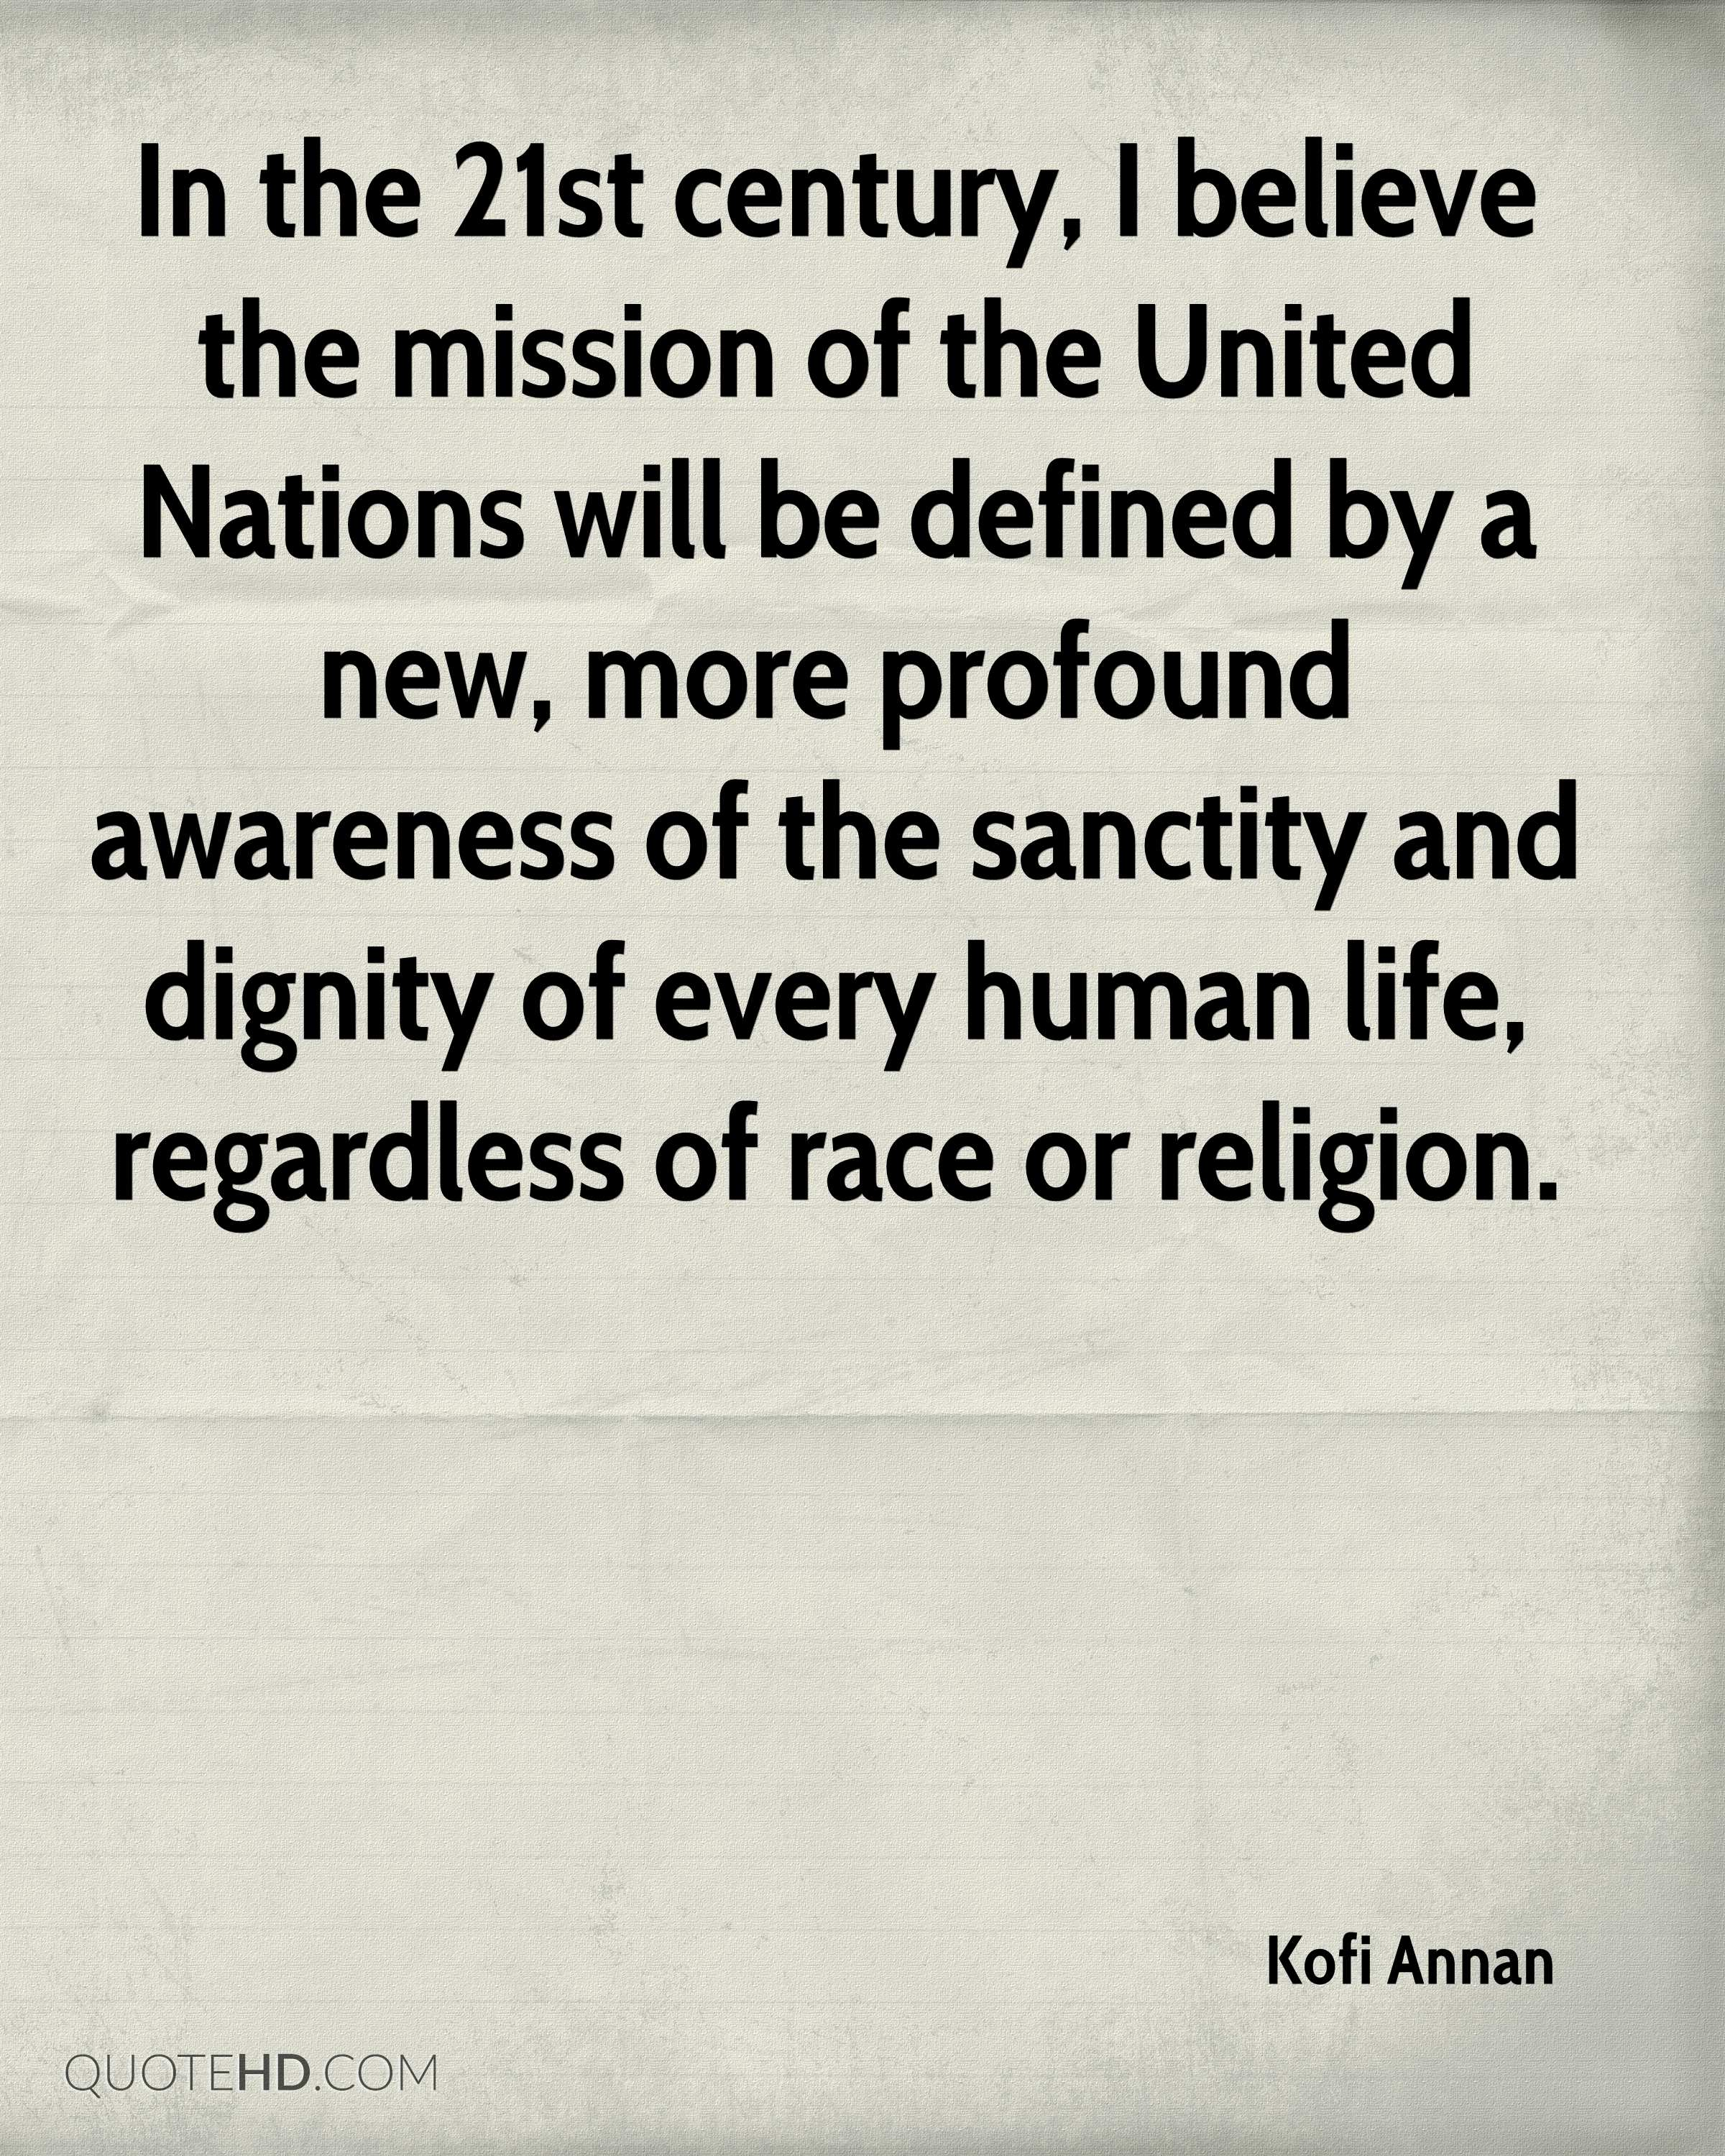 In the 21st century, I believe the mission of the United Nations will be defined by a new, more profound awareness of the sanctity and dignity of every human life, regardless of race or religion.